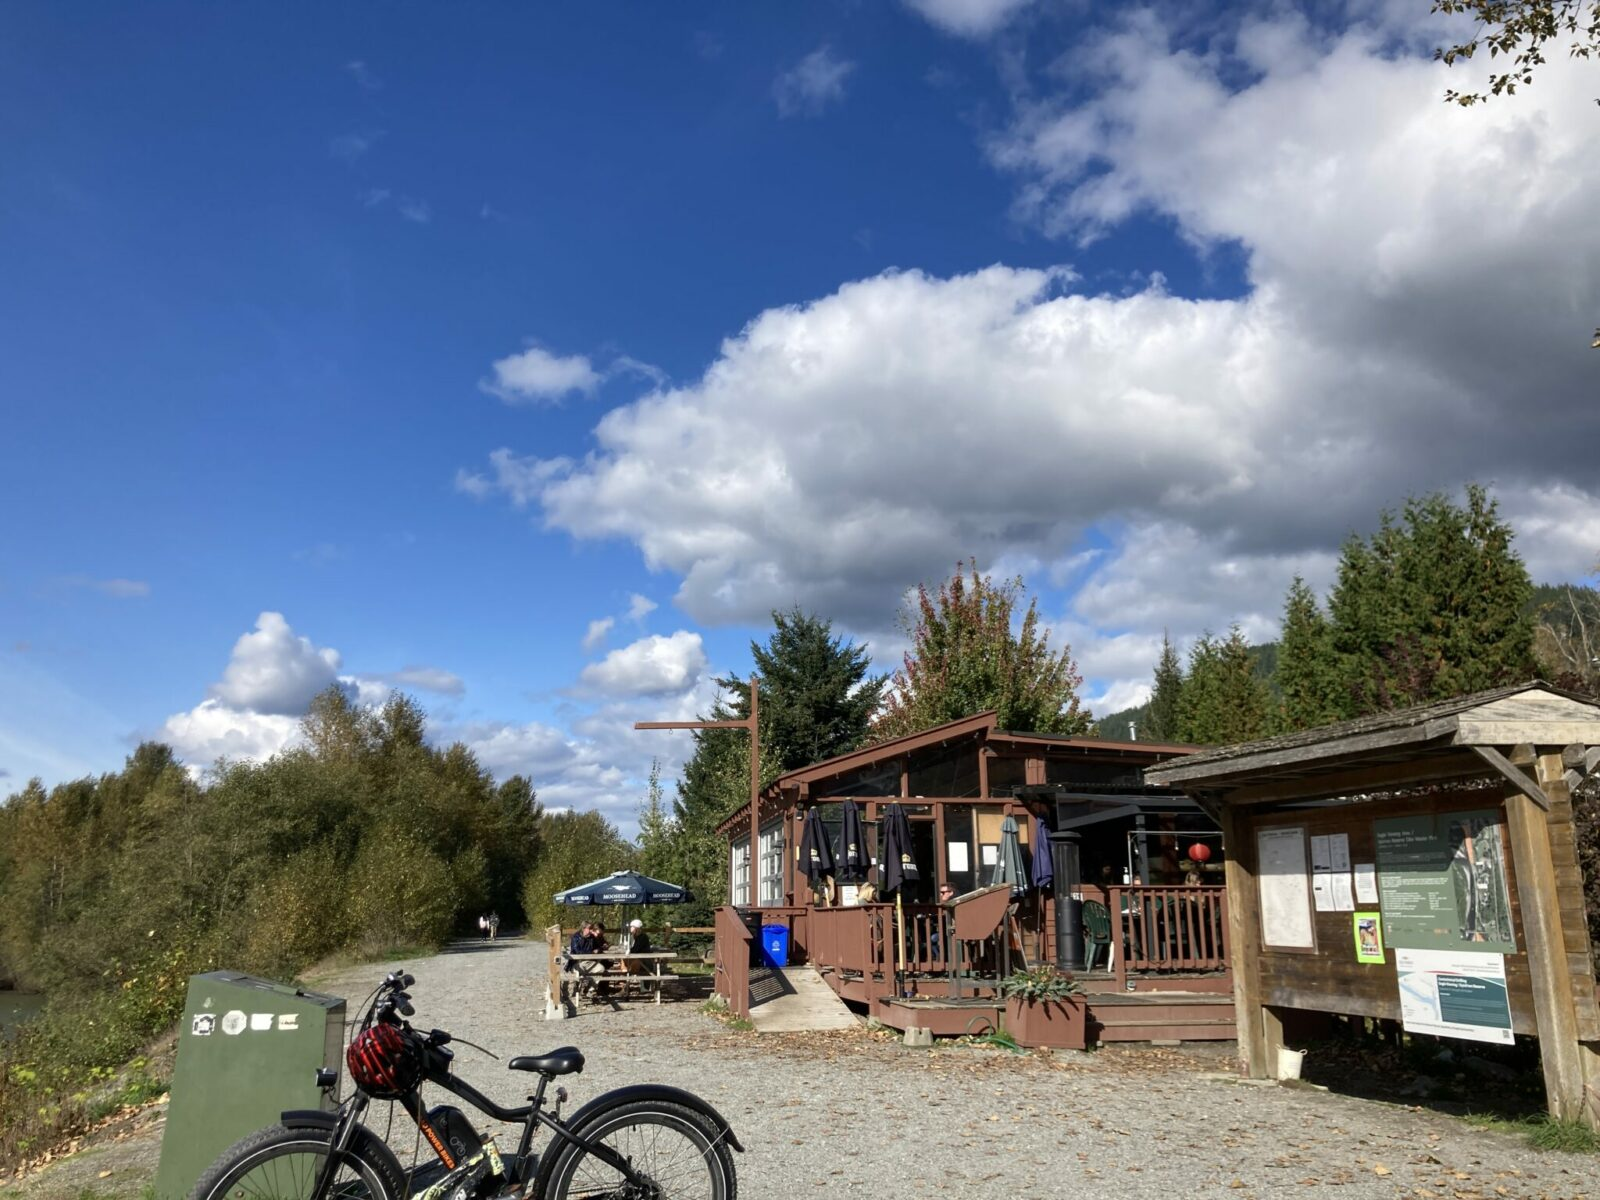 A brown wooden restaurant with a small outdoor deck. There is also a picnic table with an umbrella in front of the restaurant. A gravel path goes across the front and there is a green dumpster and a bike next to the trail. There is also a trailhead sign and forest surrounedin